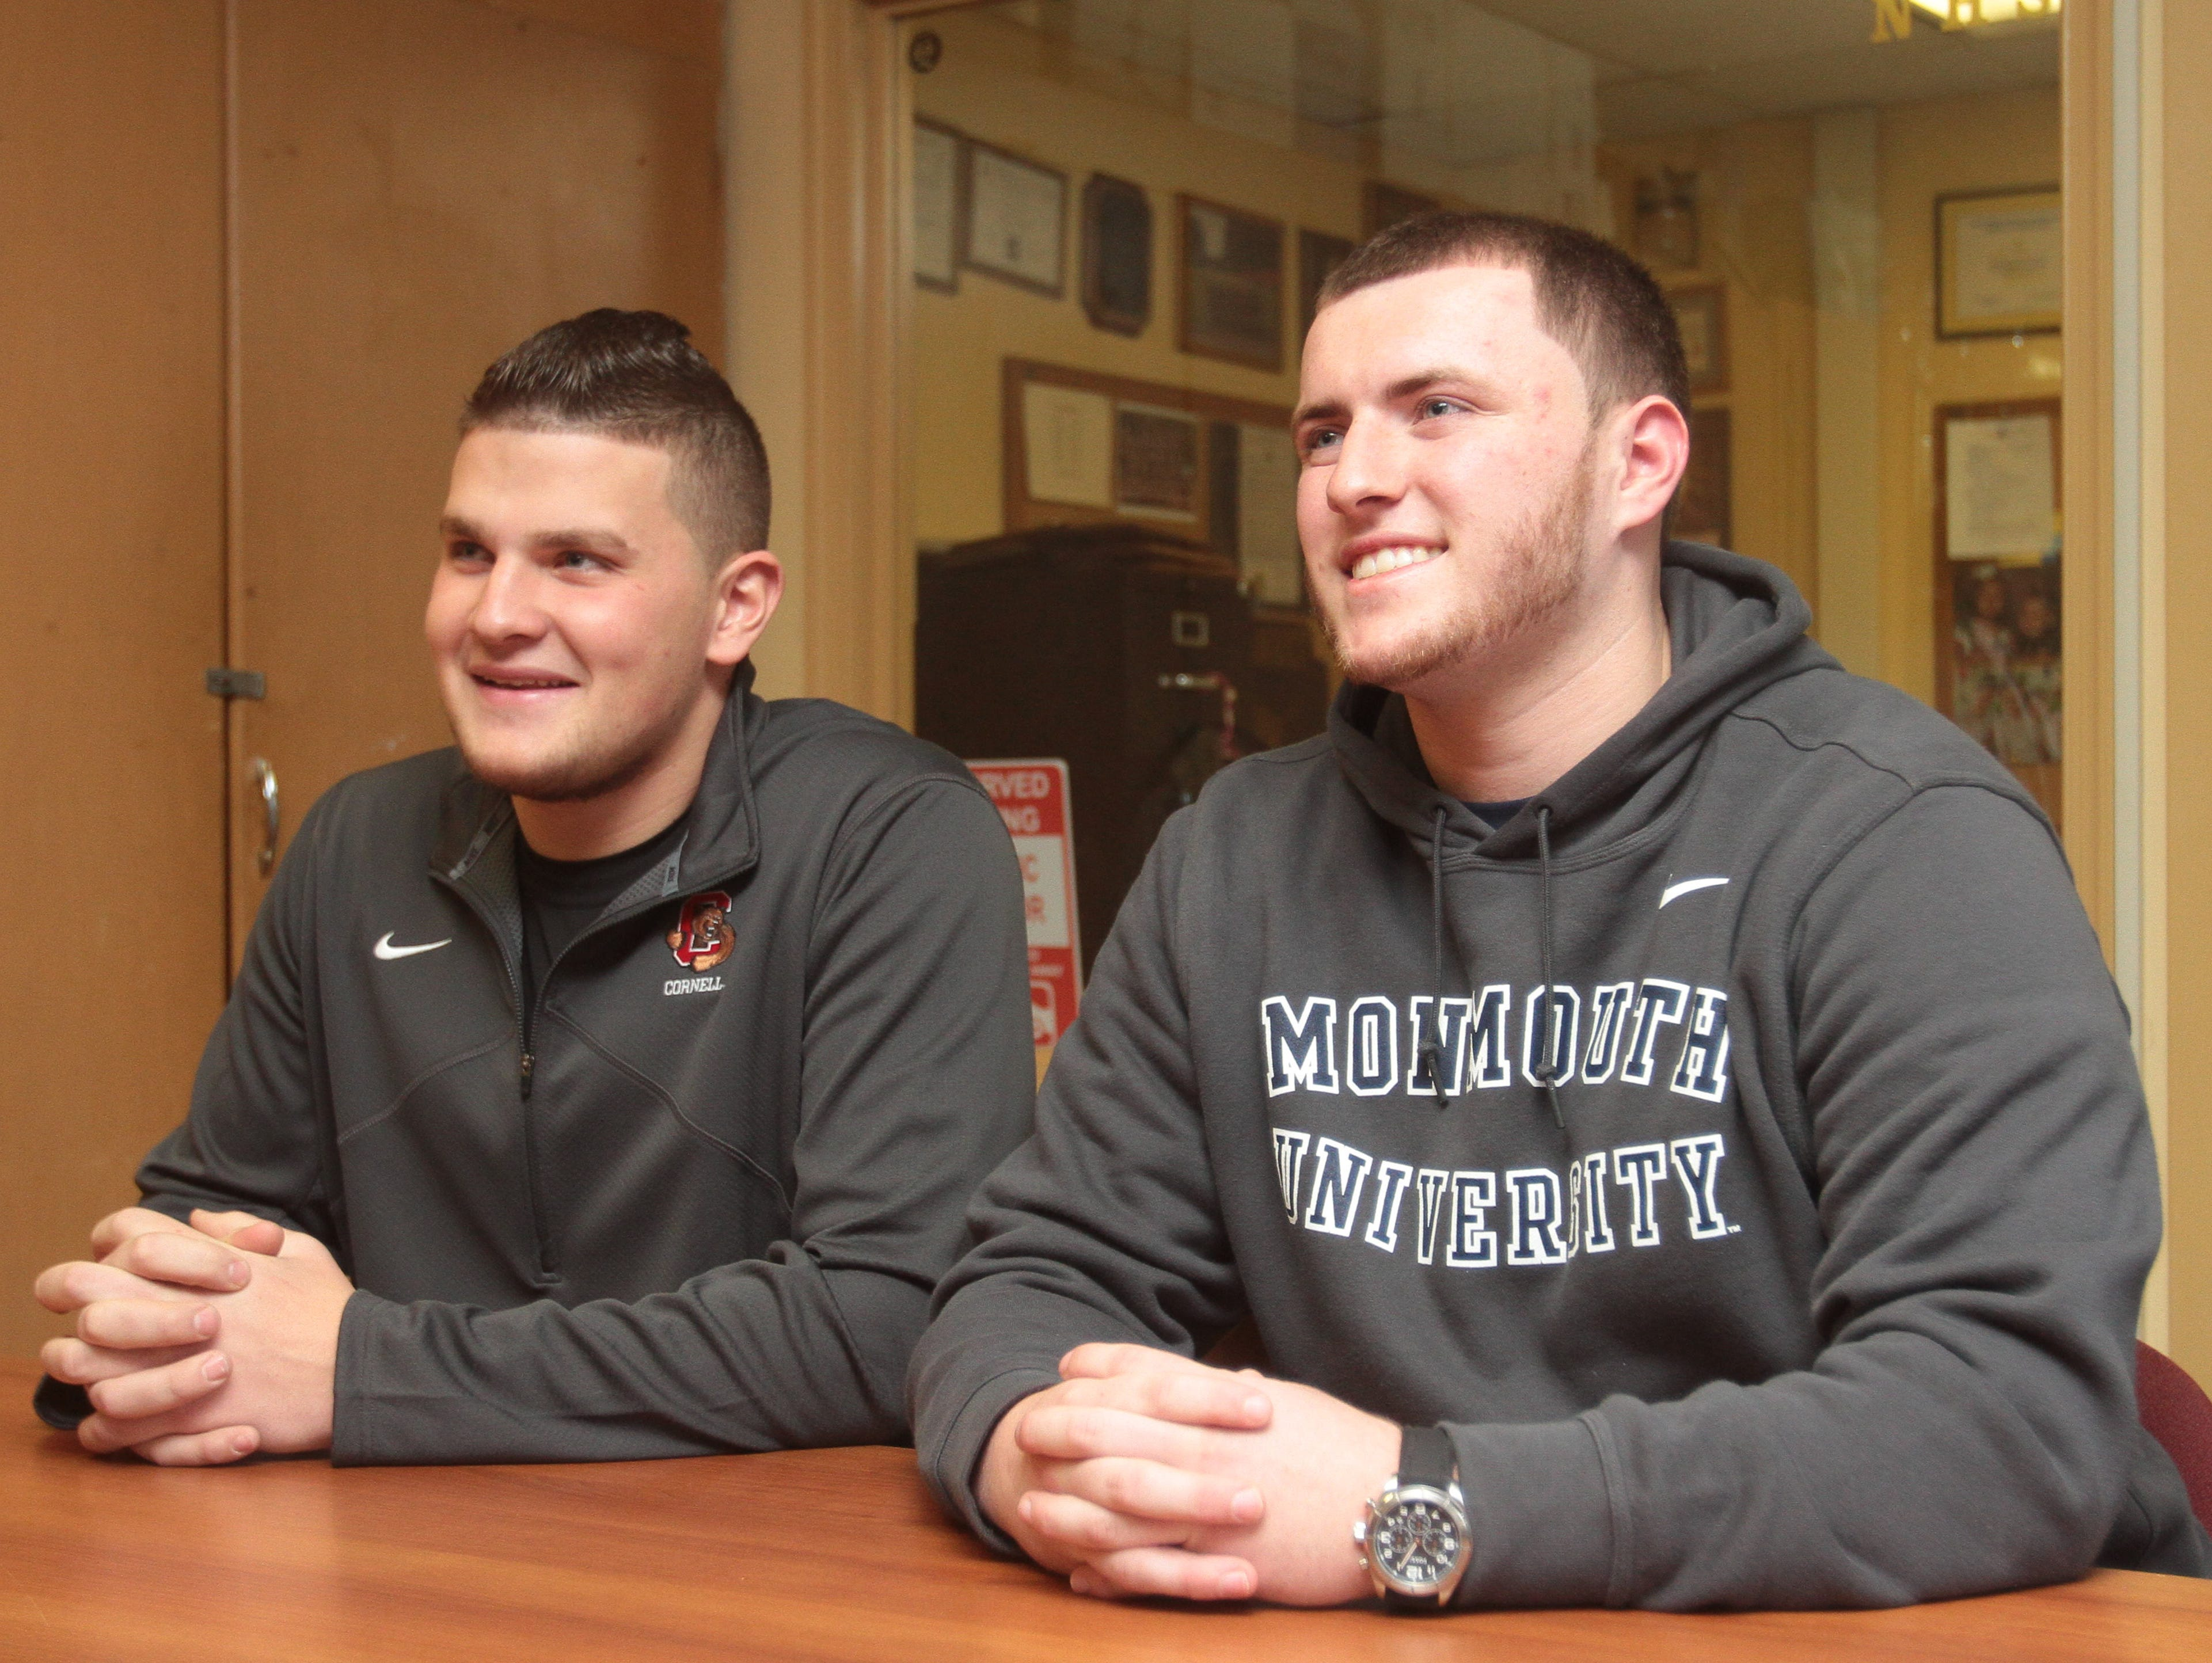 Jordan Landsman (left) signed on to Cornell University while Brian Syracuse (right) signed on to Monmouth University on National Signing Day Feb. 3, 2016 at Nanuet Senior High School.